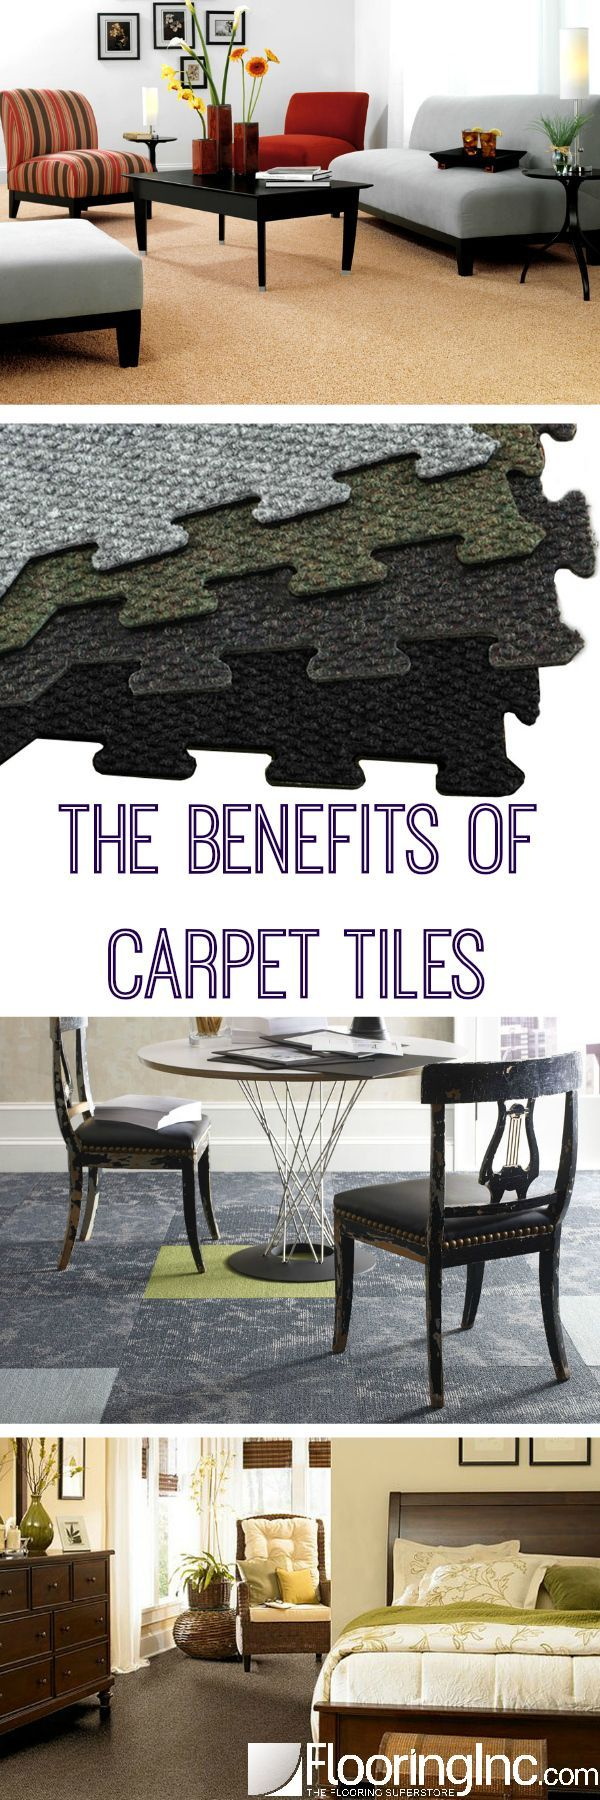 The Benefits Of Carpet Tiles Basement Remodelingbasement Ideaspretty Bedroomcarpet